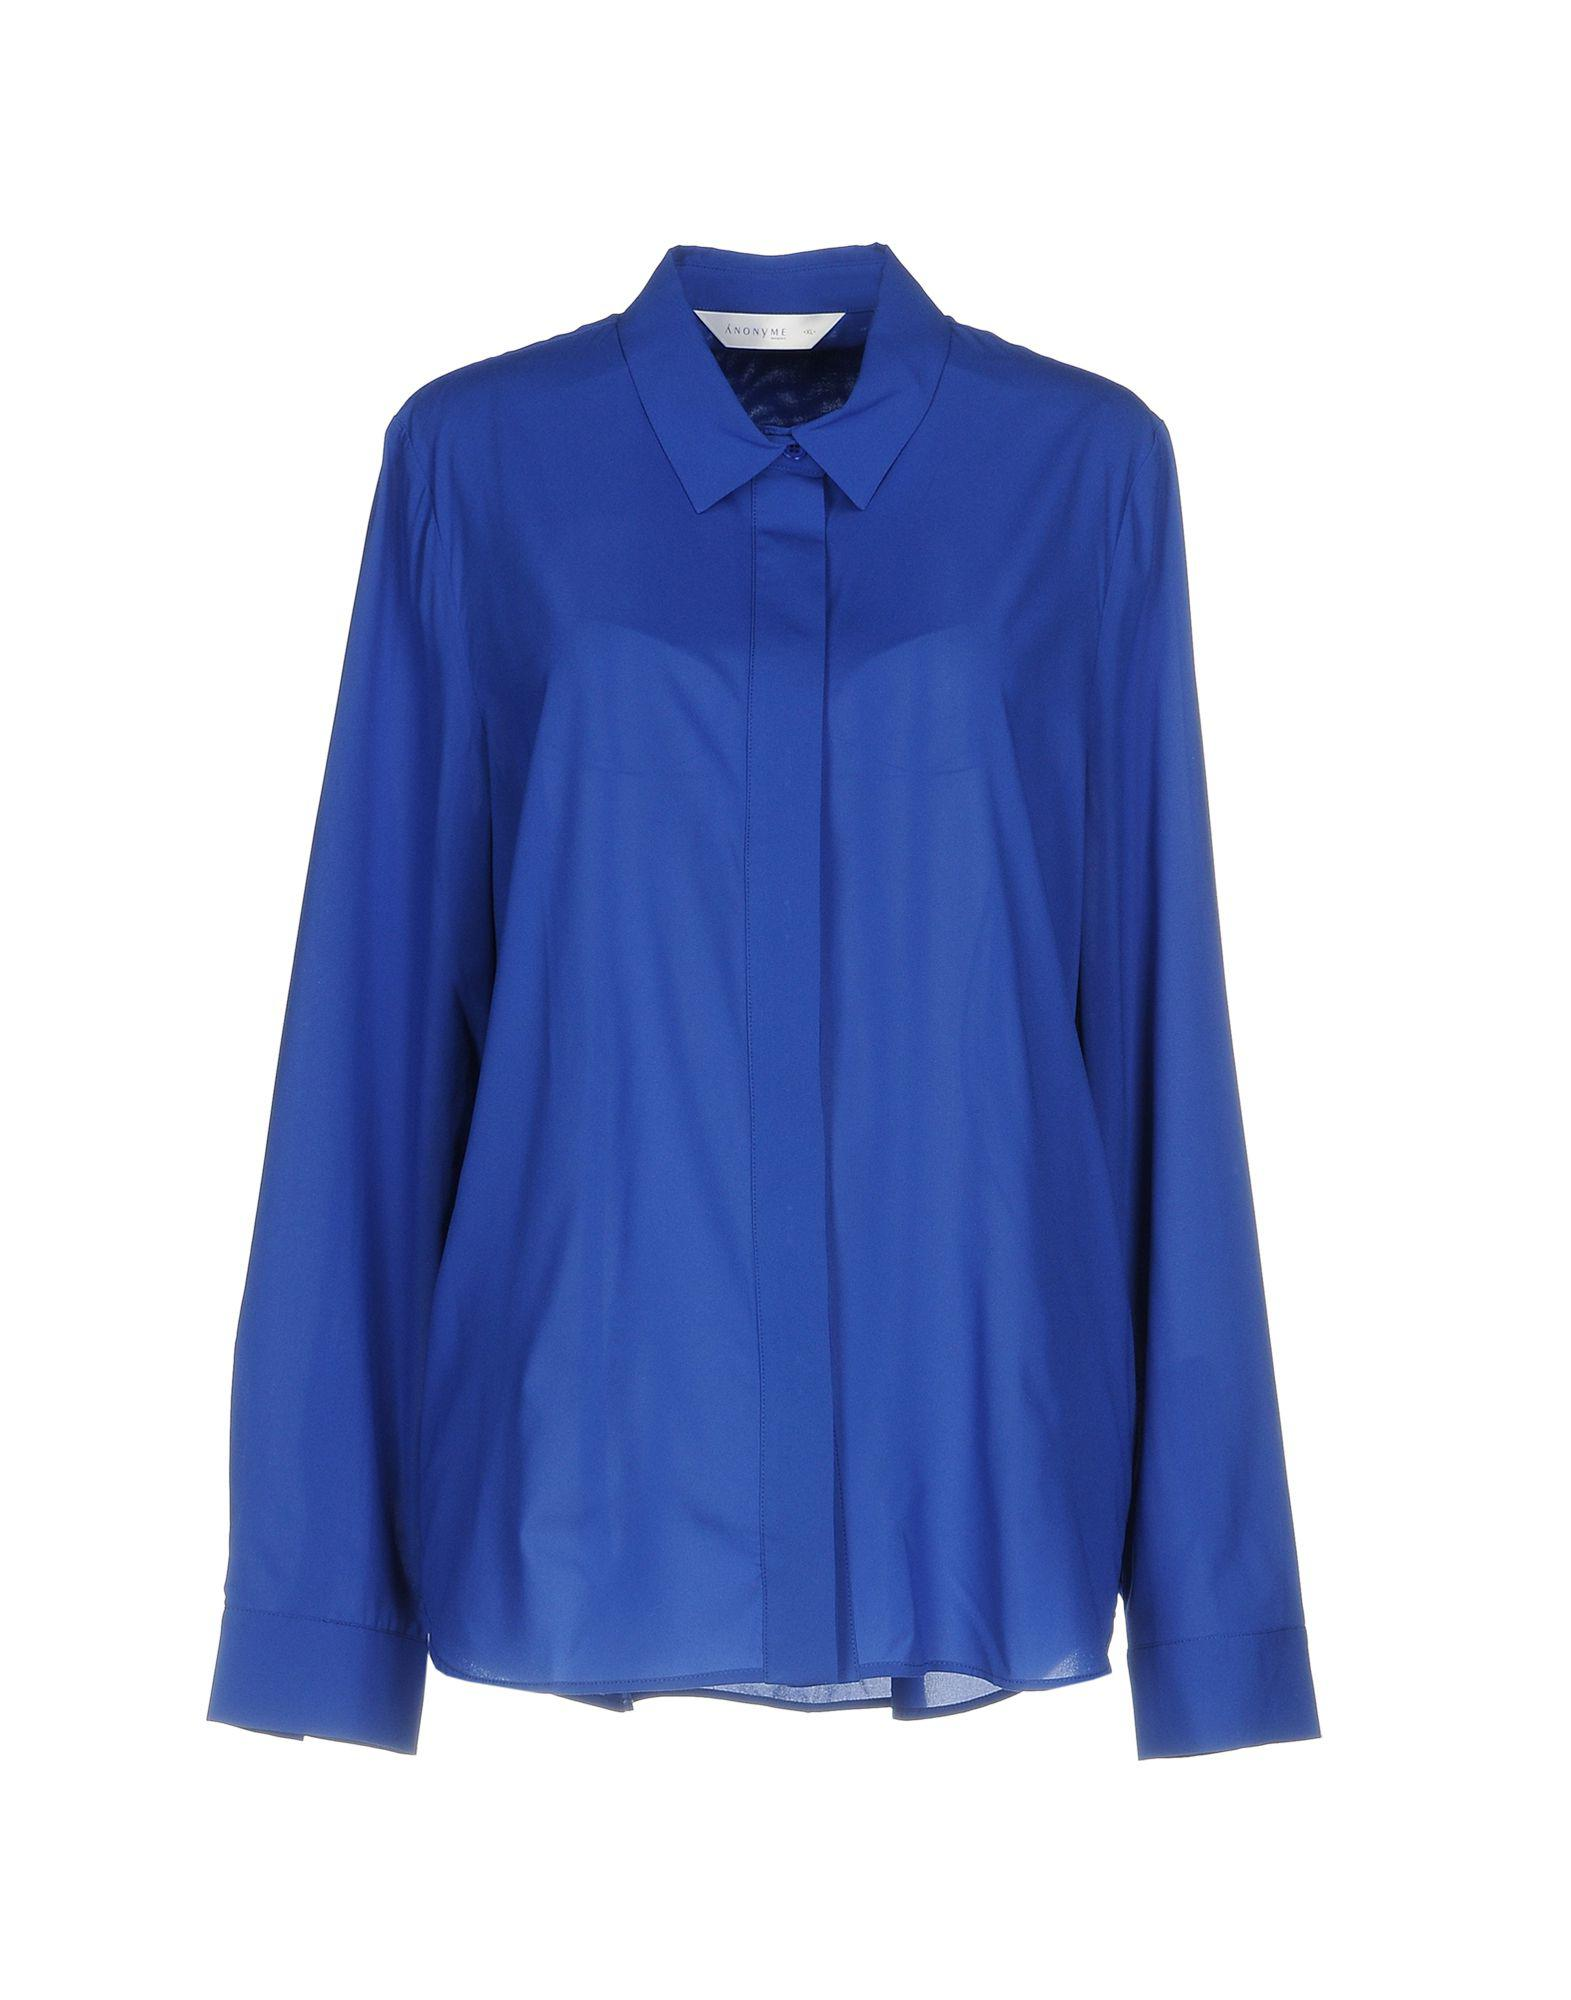 SHIRTS - Blouses Anonyme Designers Clearance Wholesale Price y2ze3m